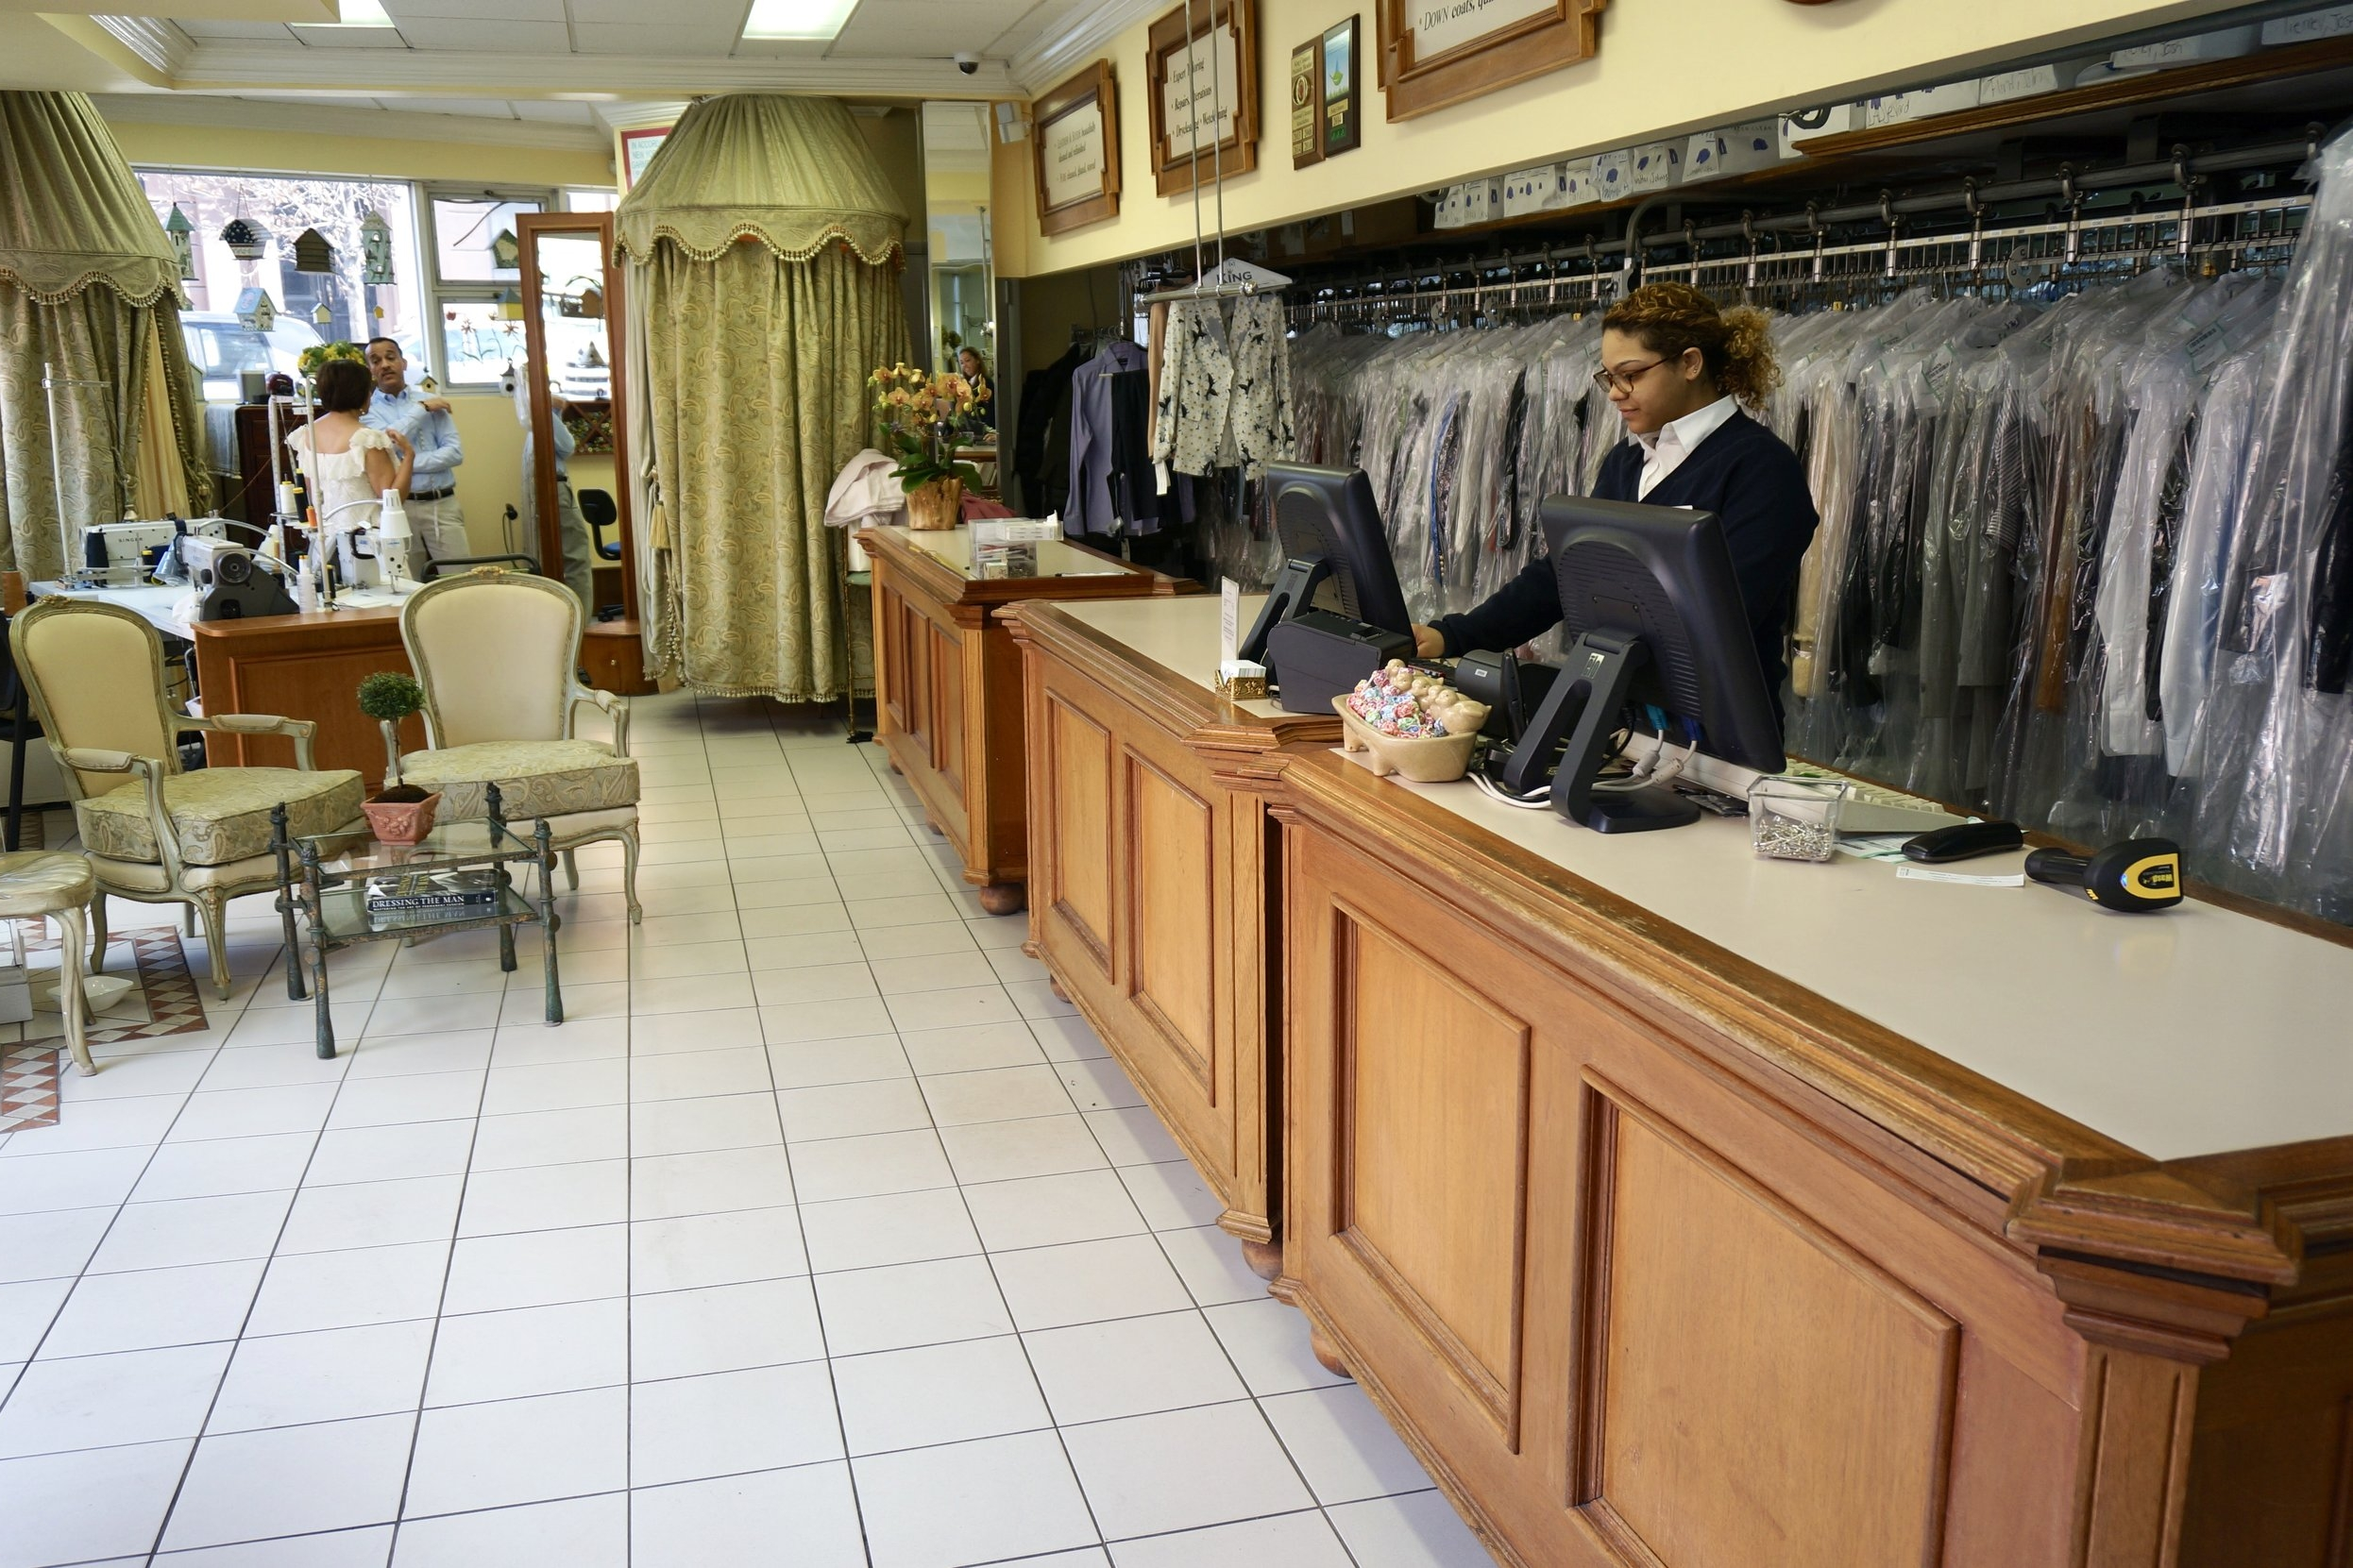 Stop By - Come check out our beautiful boutique, and say hello.